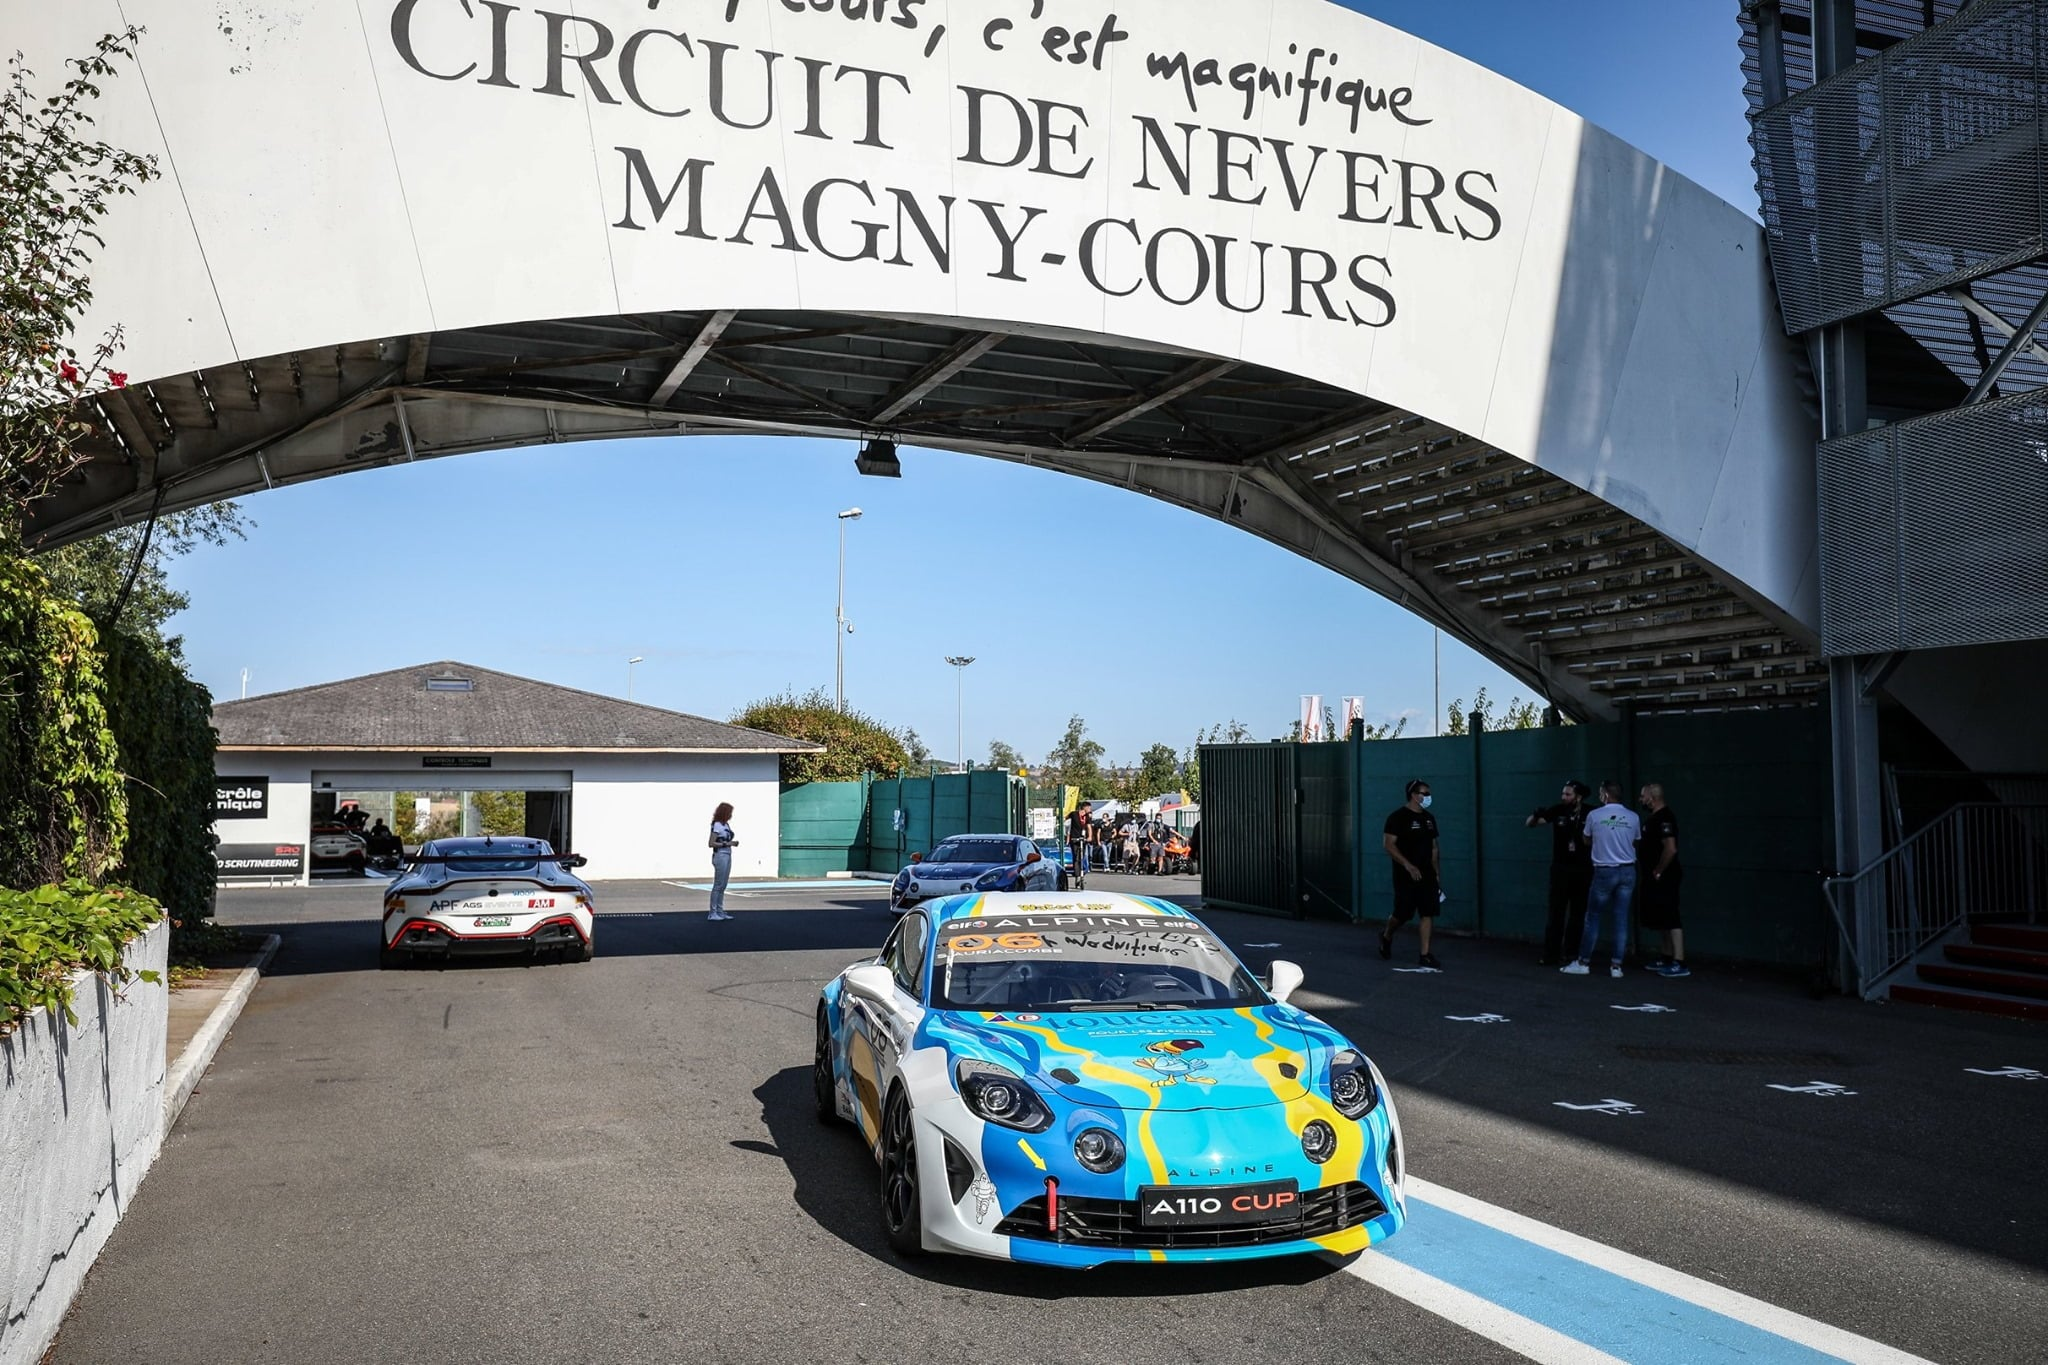 Alpine Elf Europa Cup 2020 Magny Cours A110 Cup 25 | Alpine Elf Europa Cup 2020: Jean-Baptiste Mela triomphe à Magny-Cours